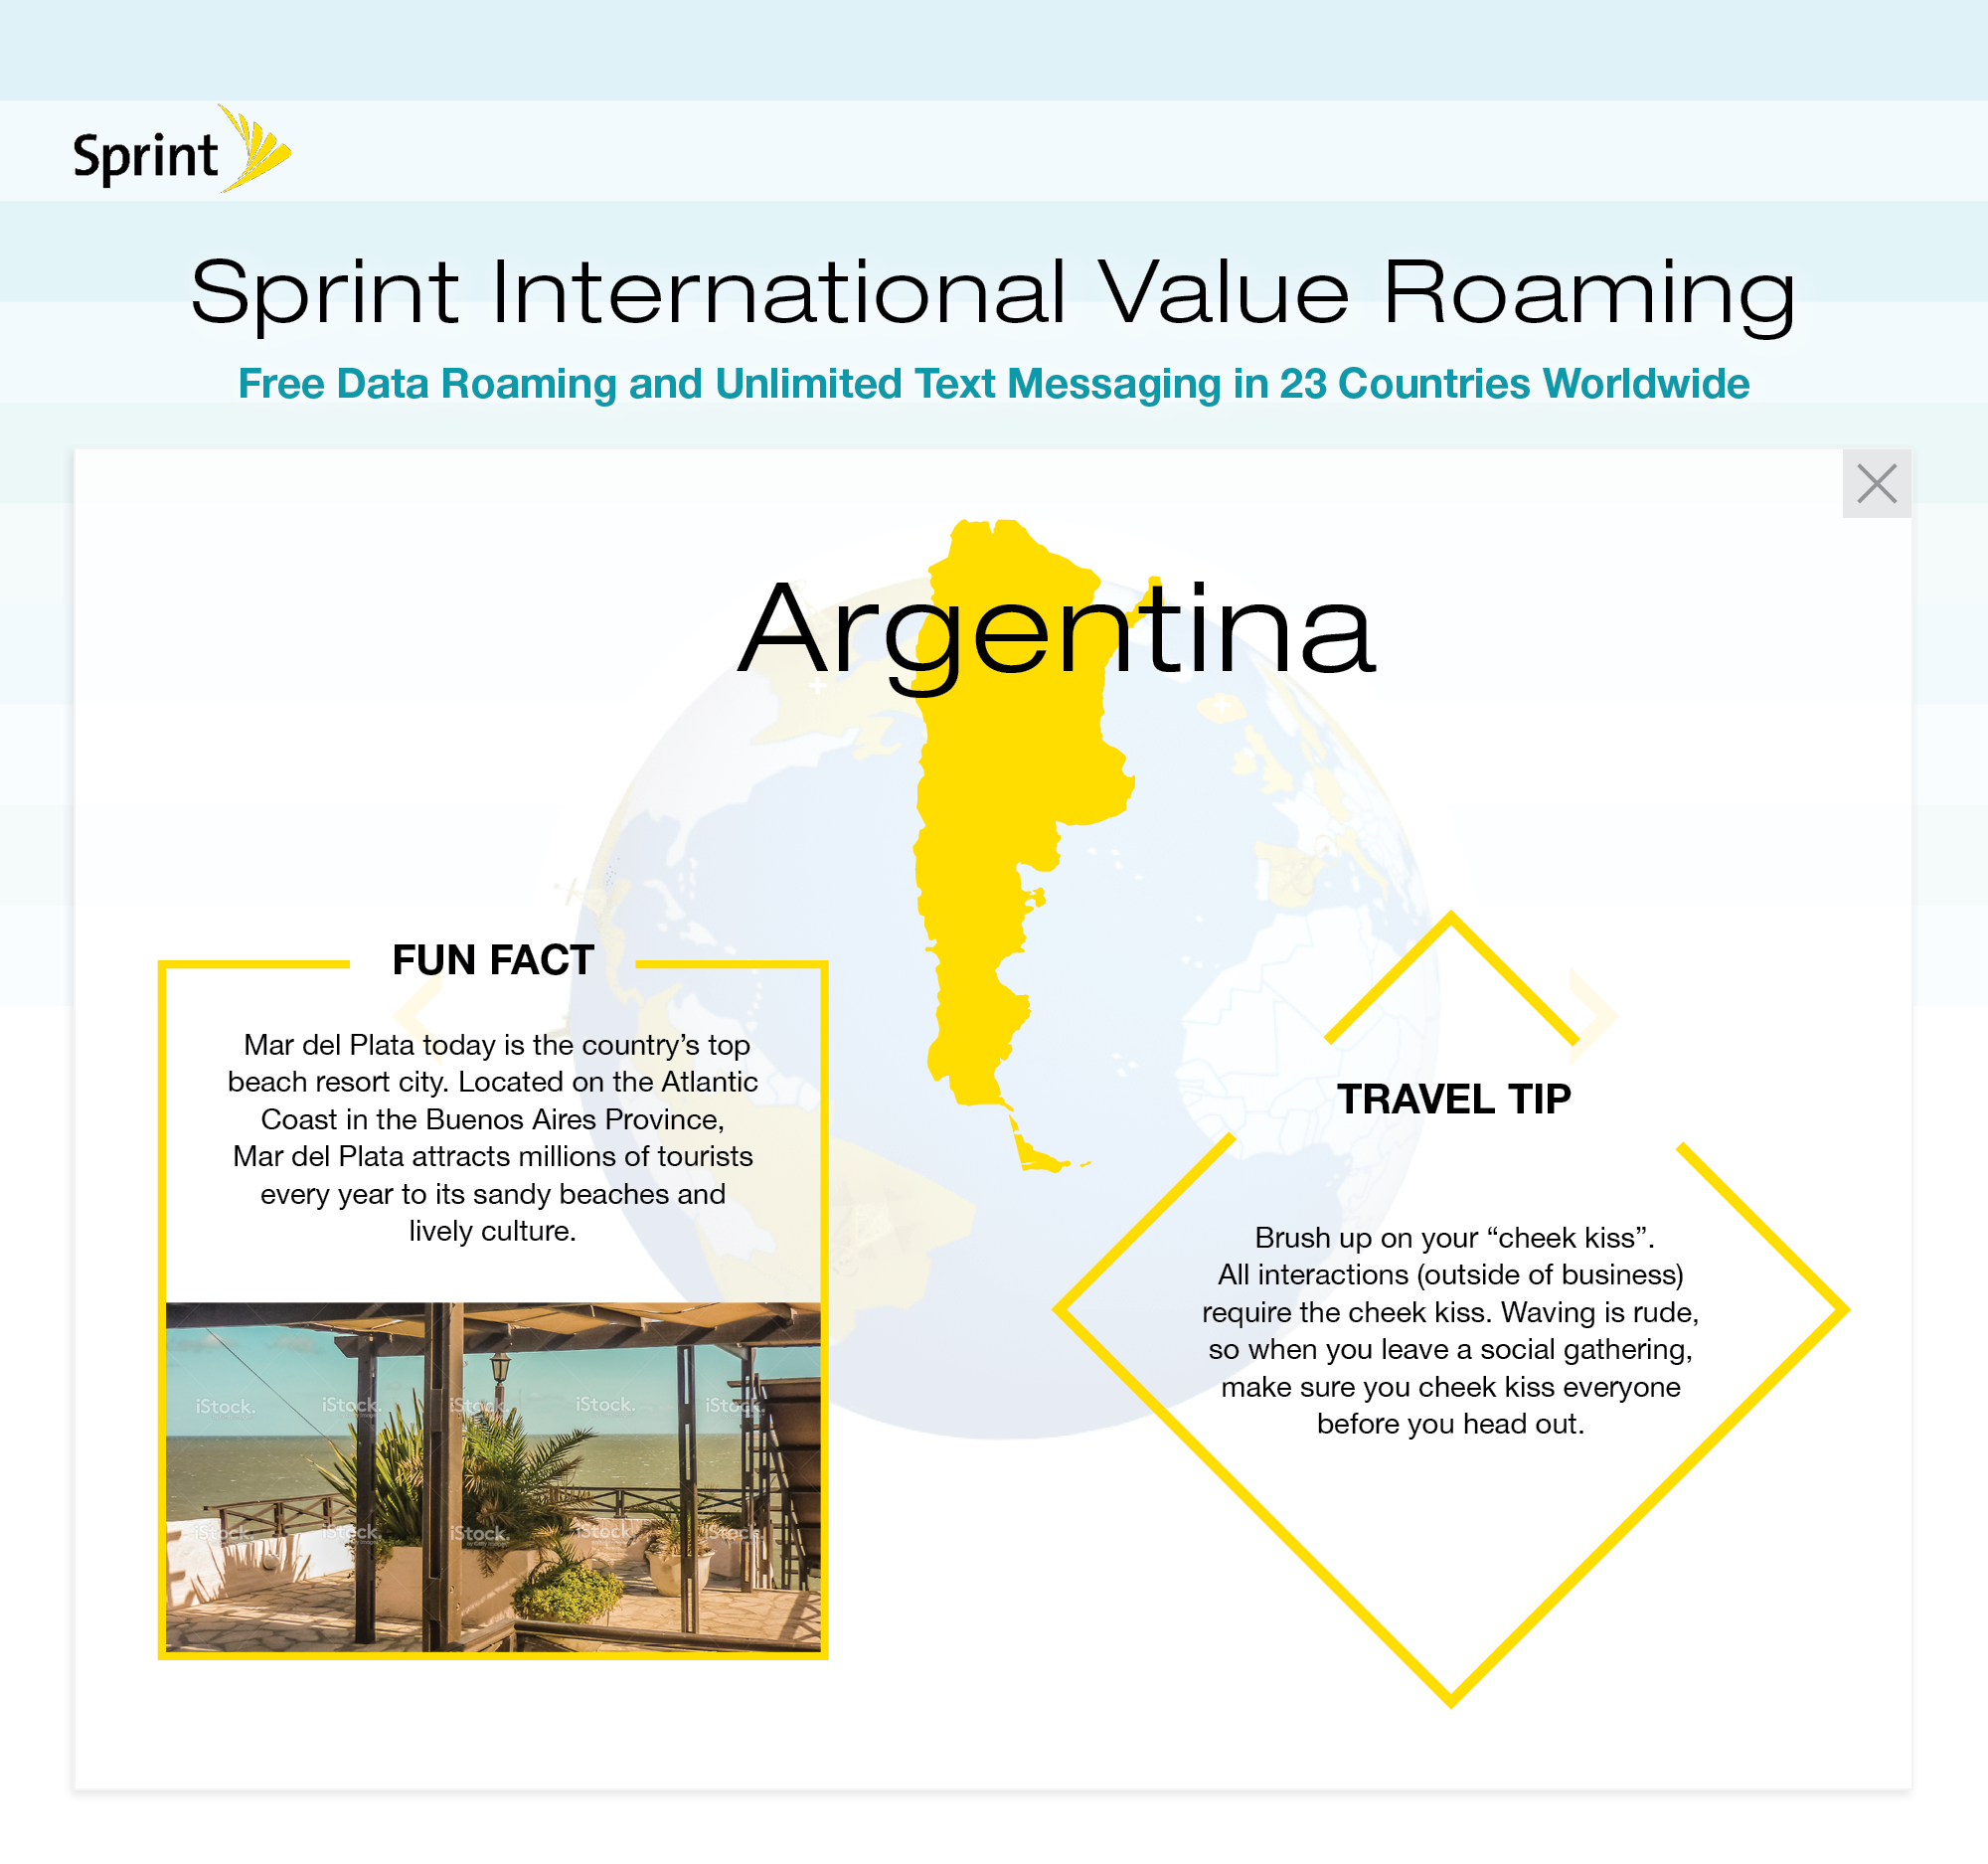 Sprint Expands Free Data Roaming to Colombia, Denmark